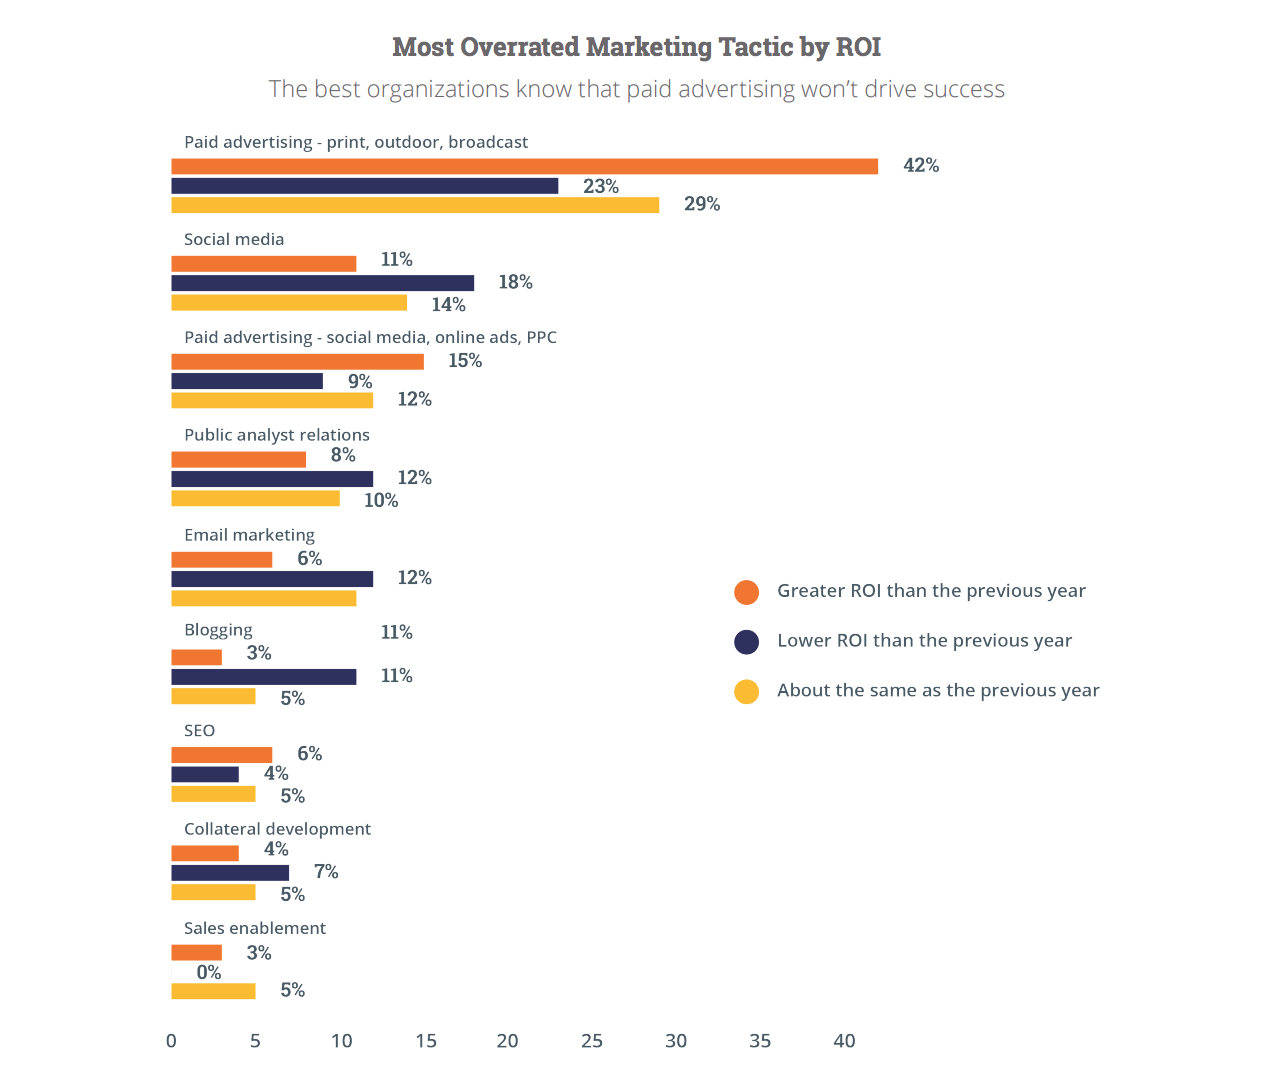 Most overrated marketing spend by ROI (chart)